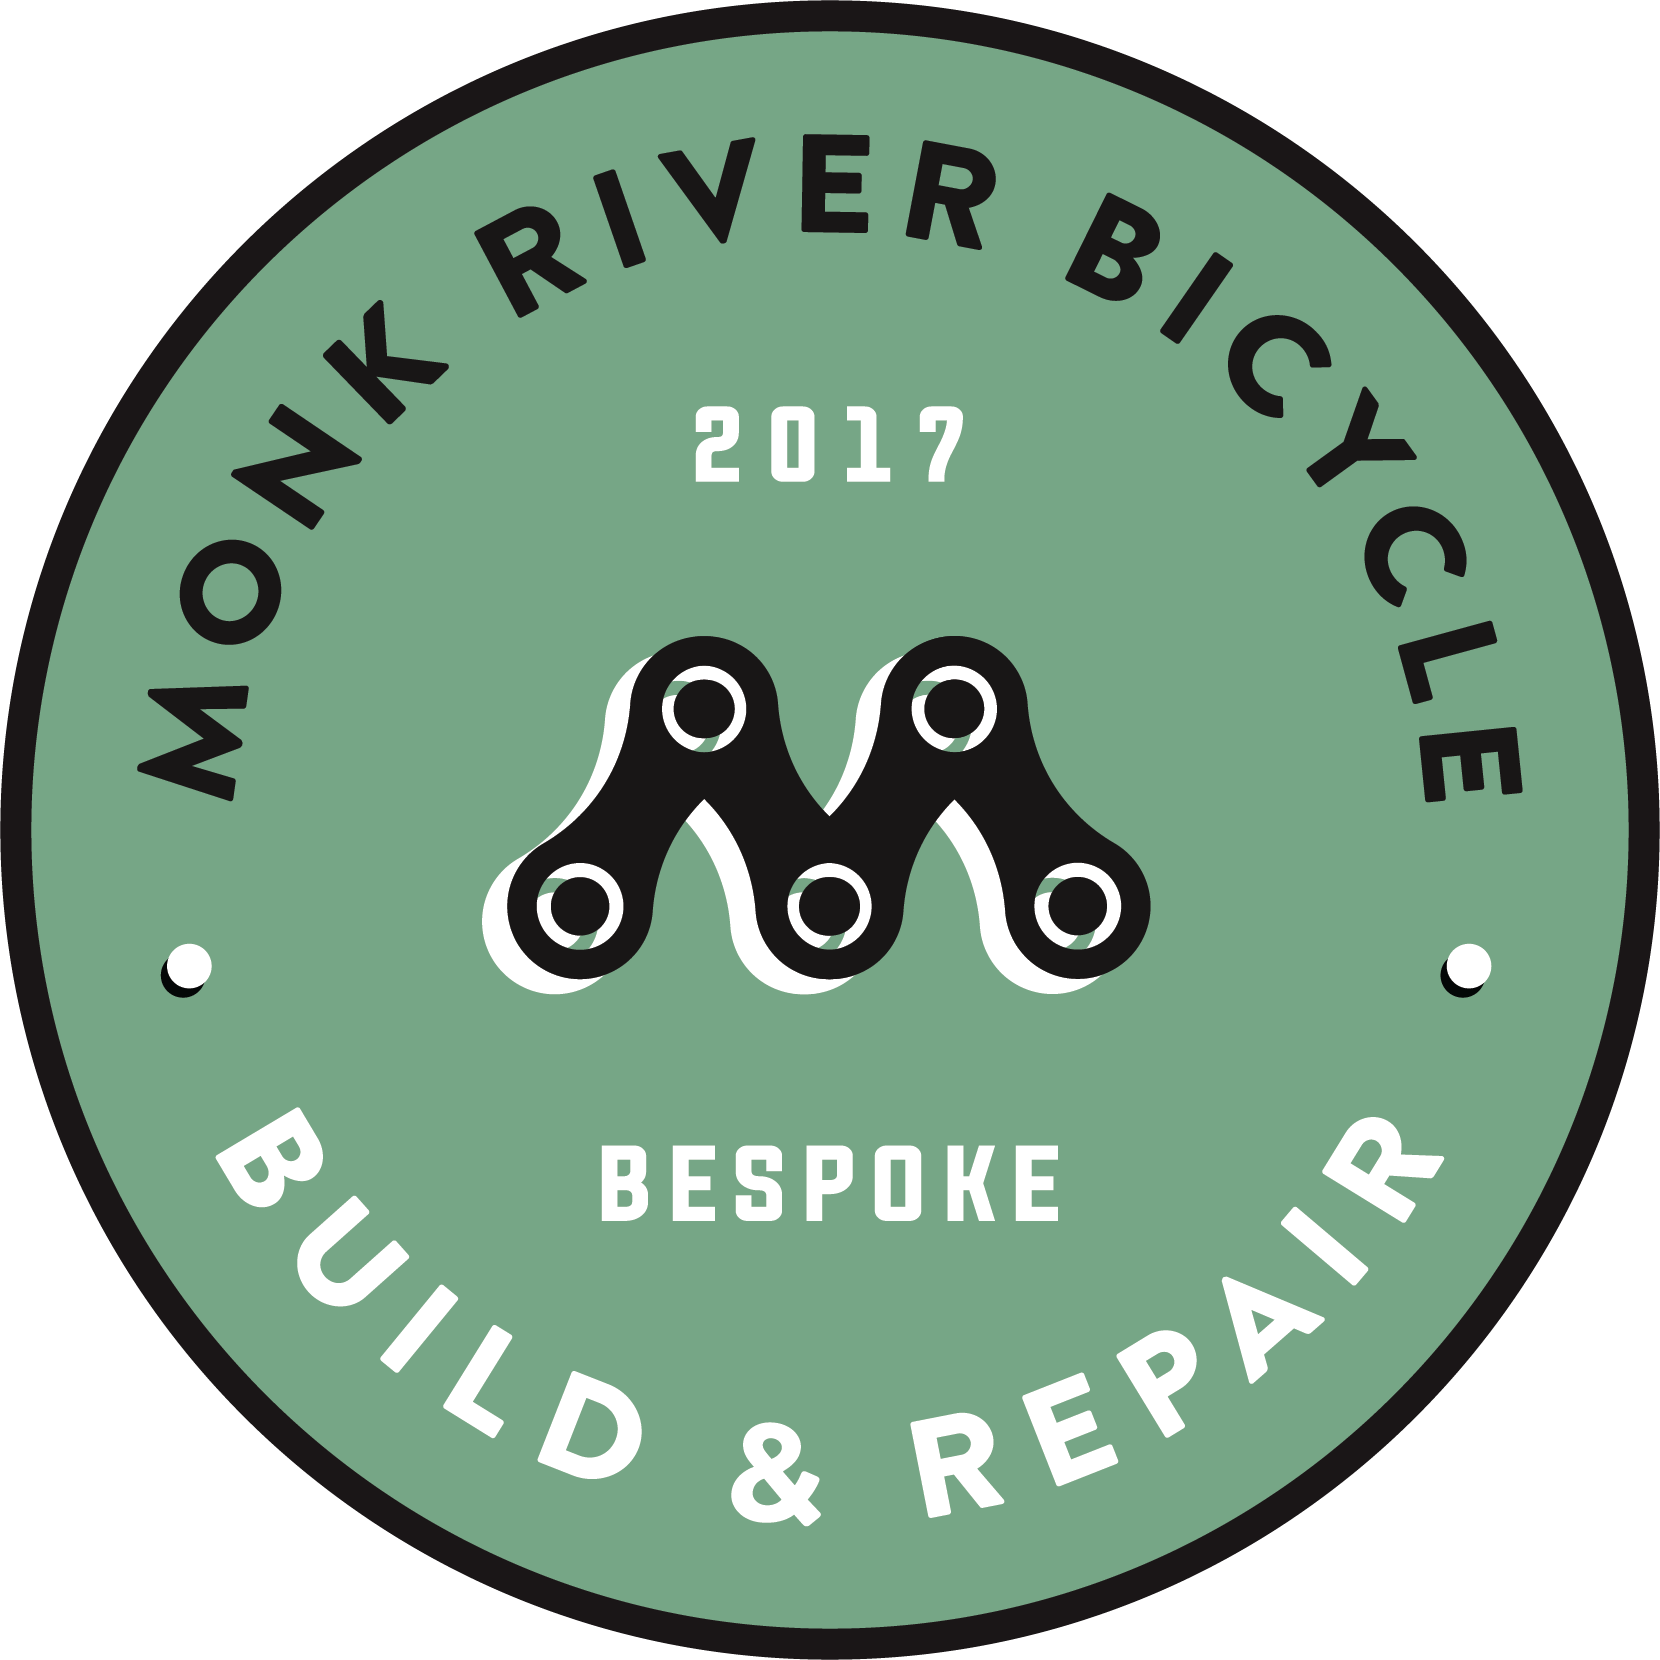 Monk River Bicycle